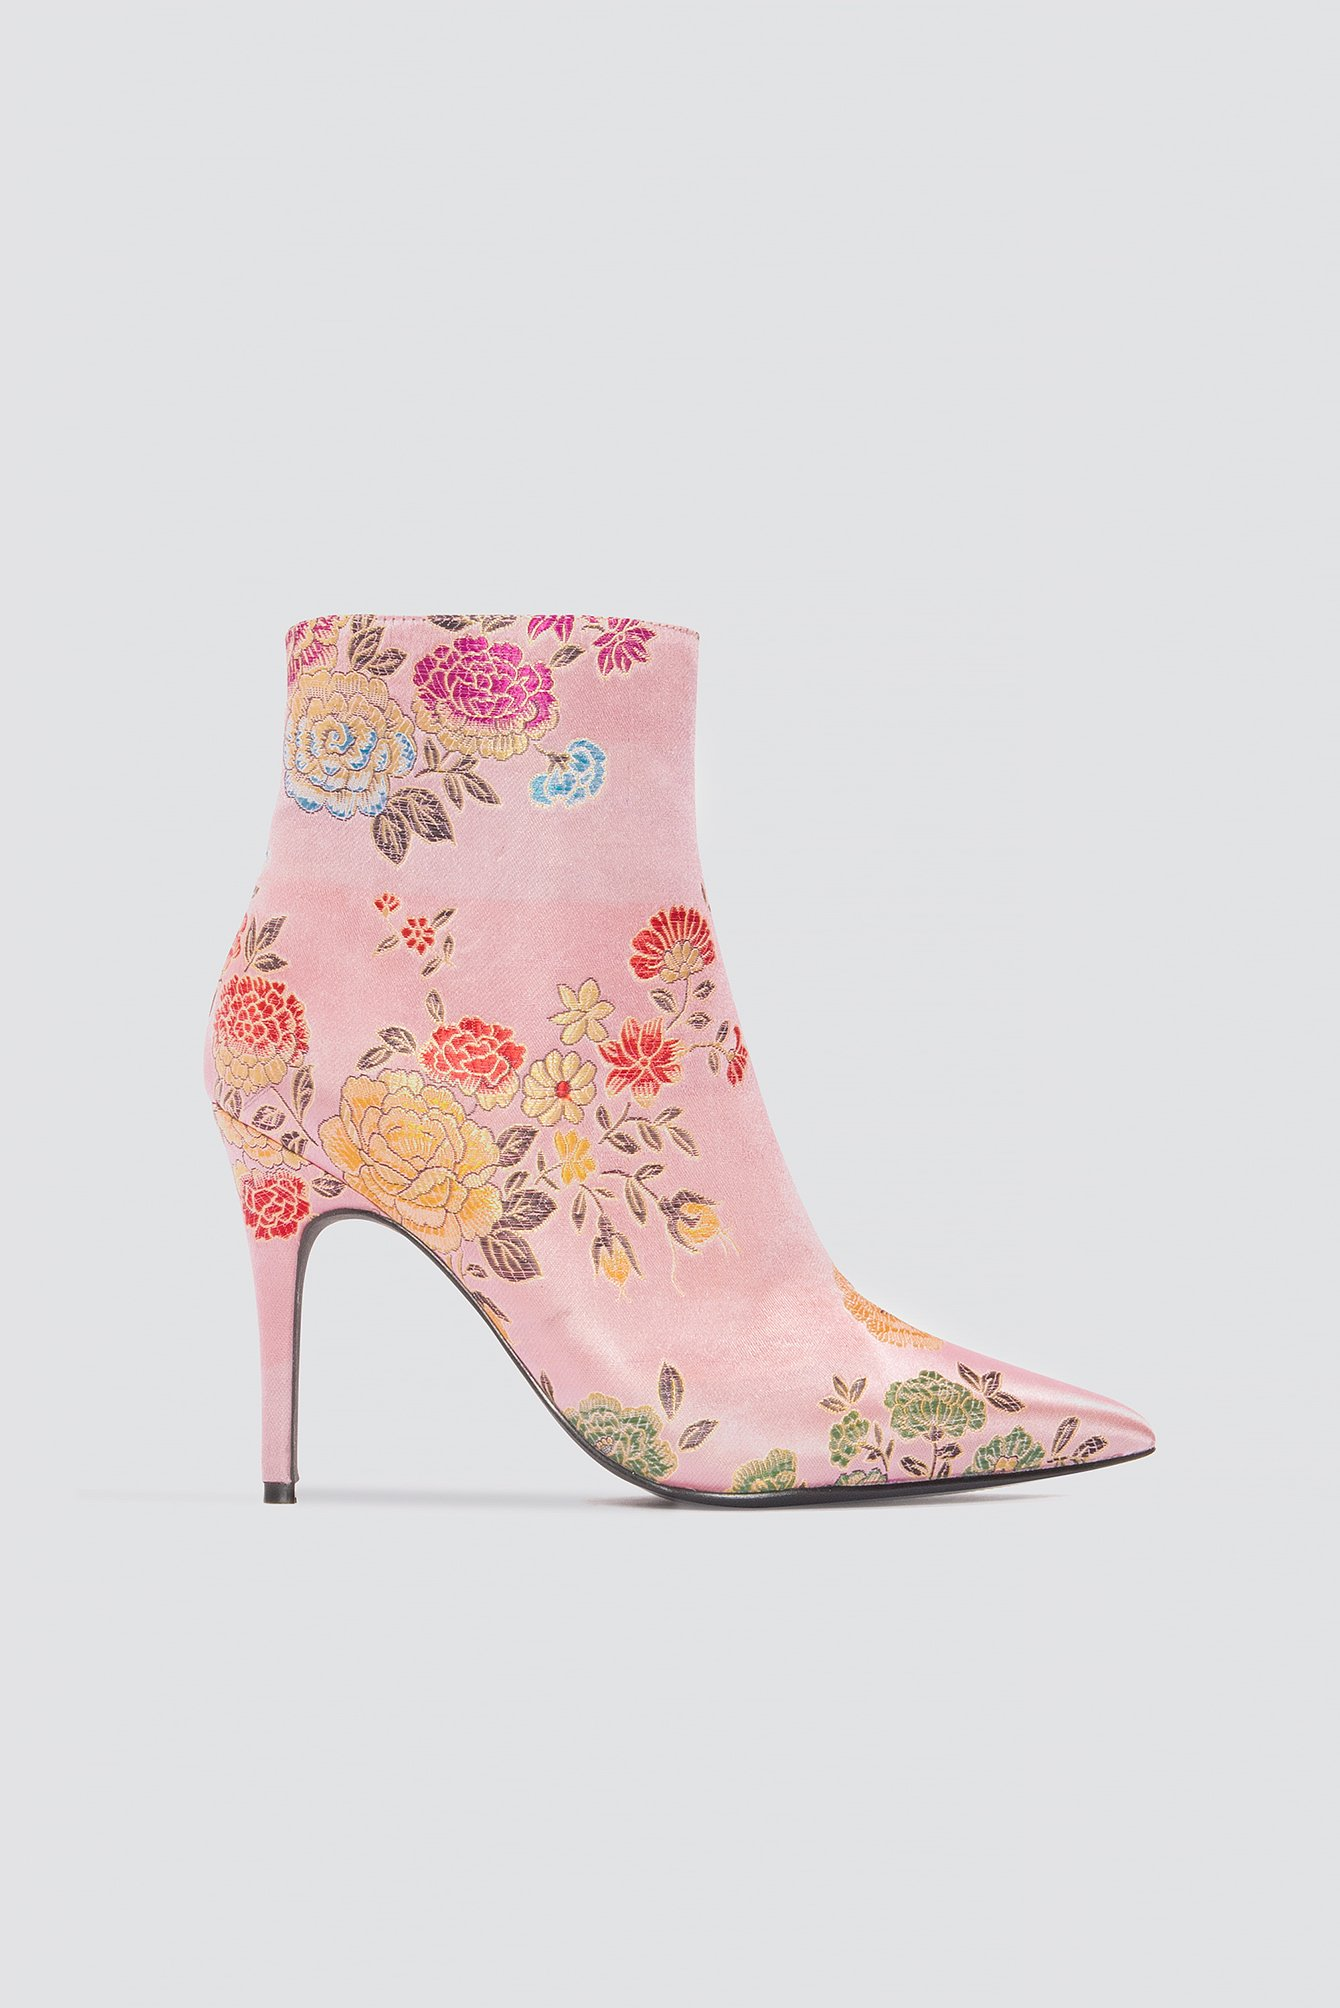 na-kd shoes -  Jacquard Flower Satin Boots - Pink